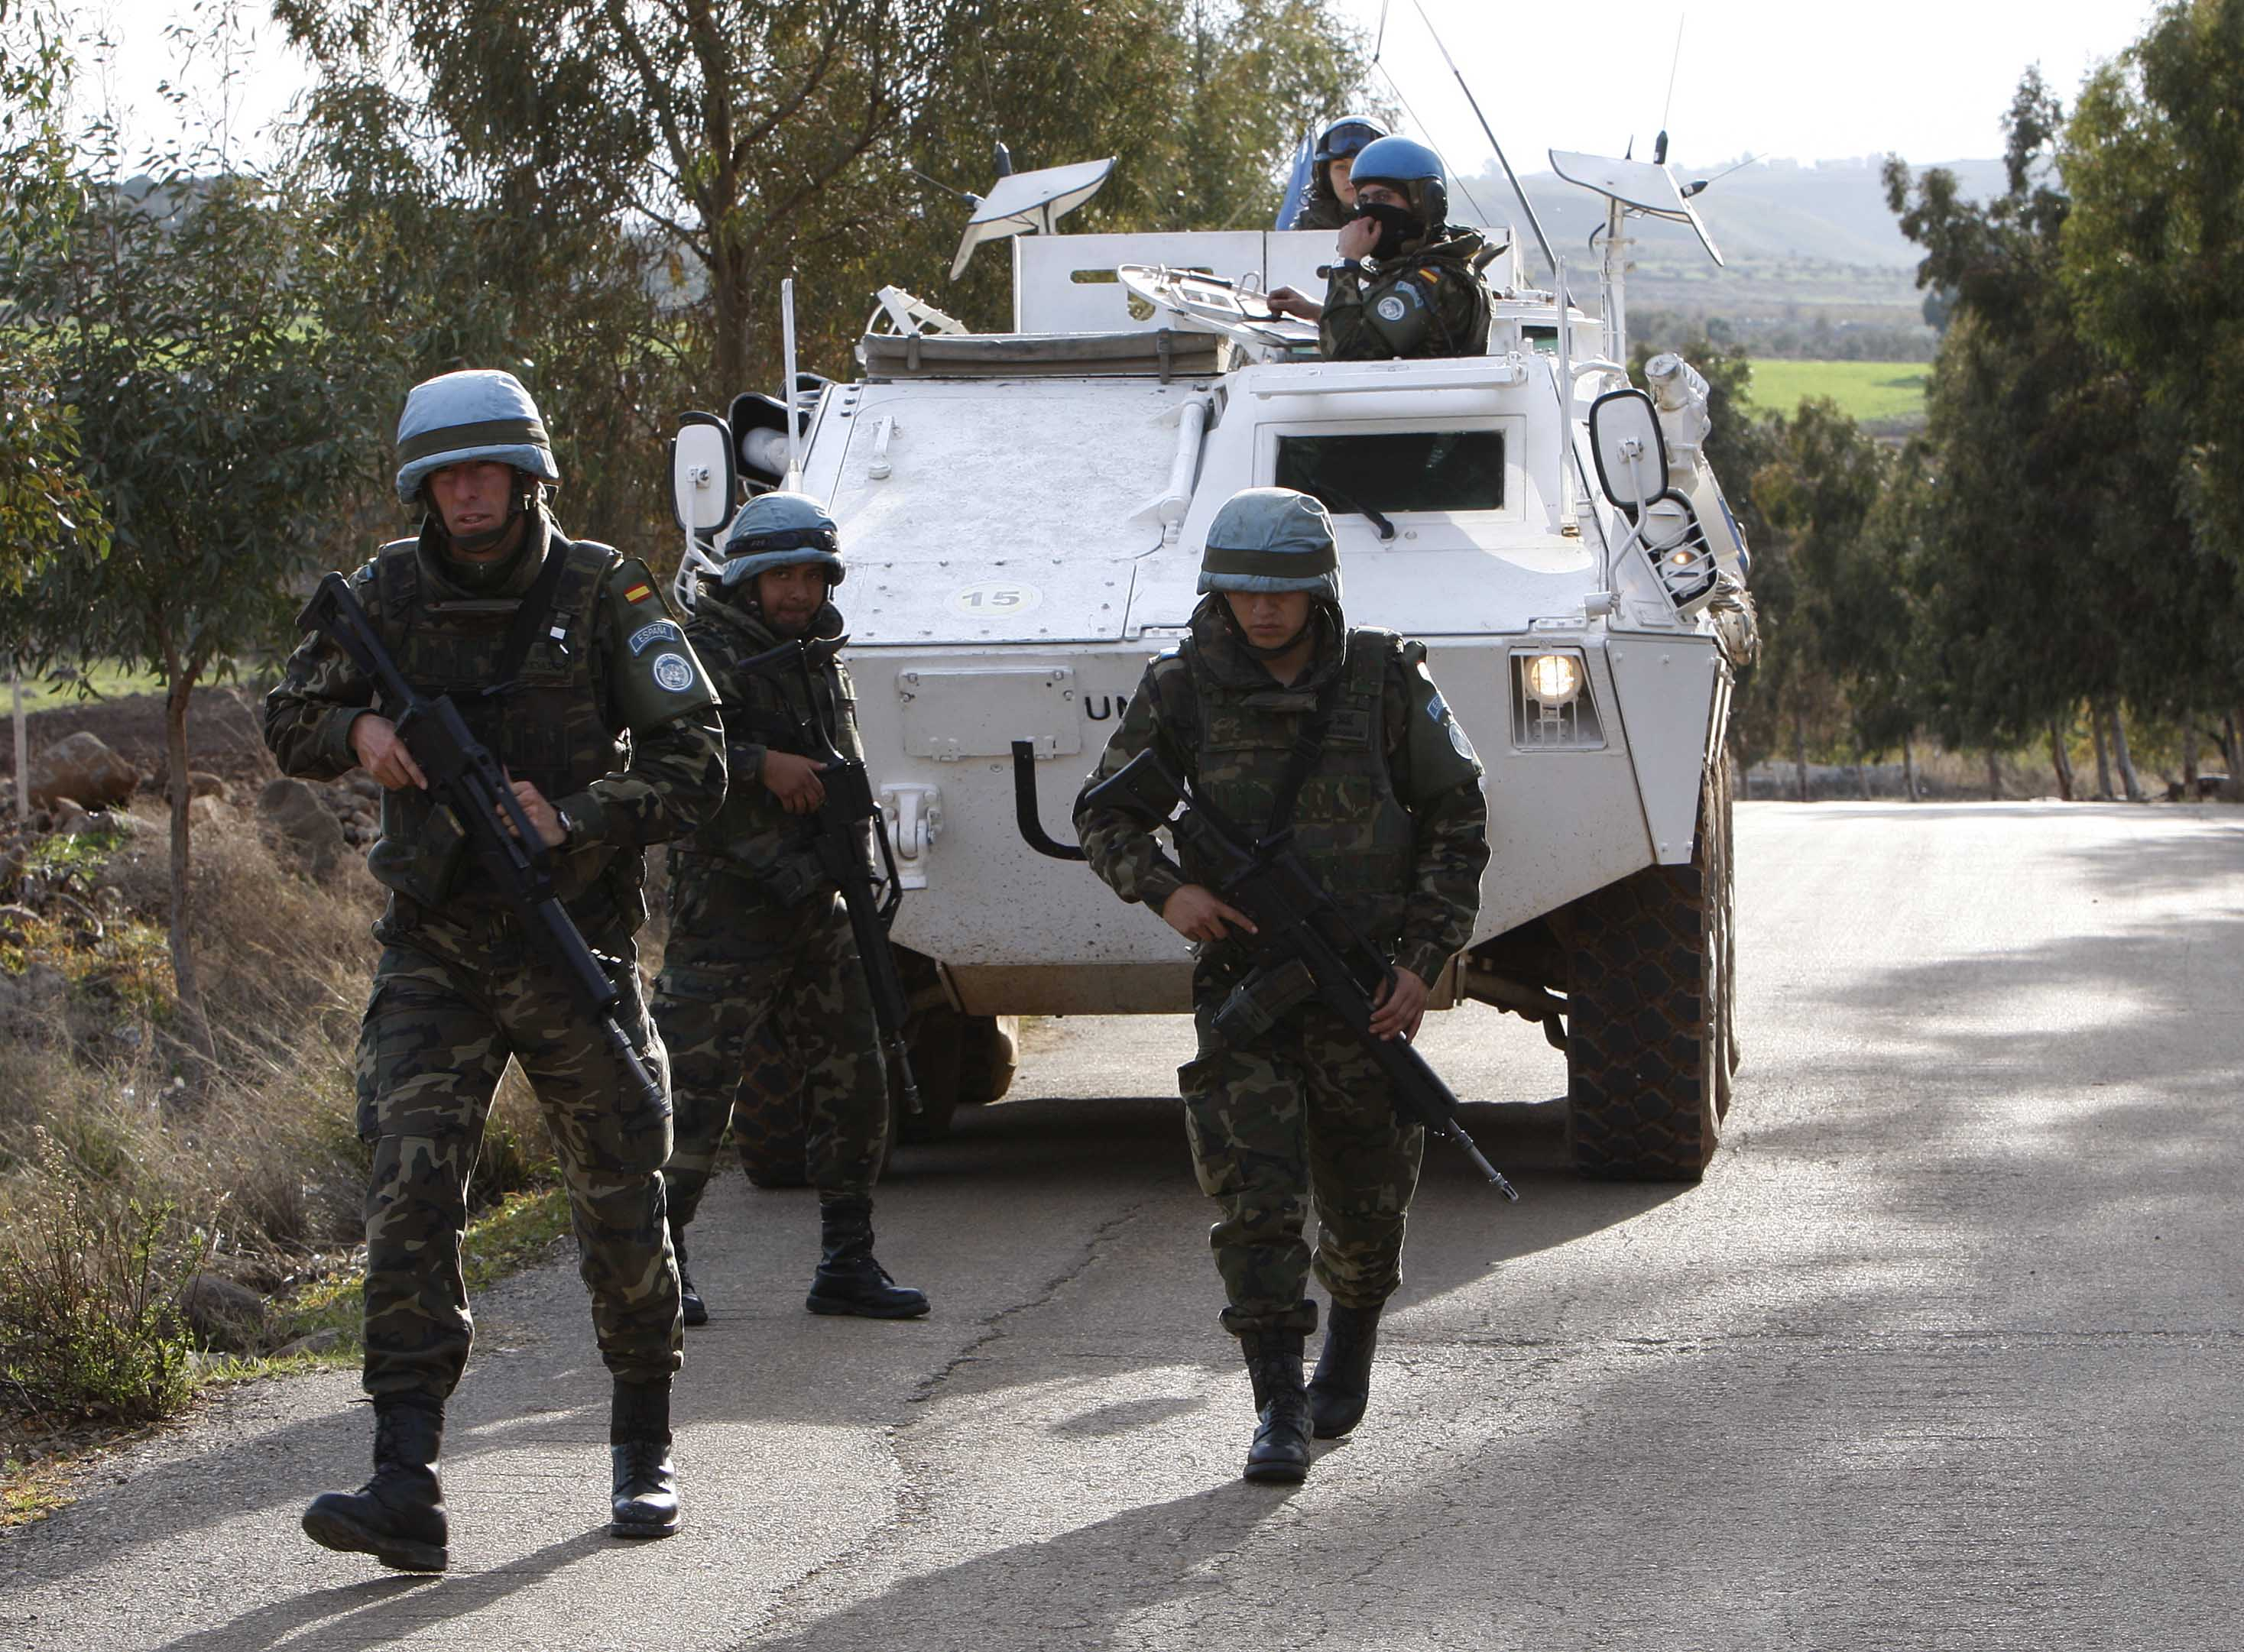 US, UN press Europe to make strong return to peacekeeping